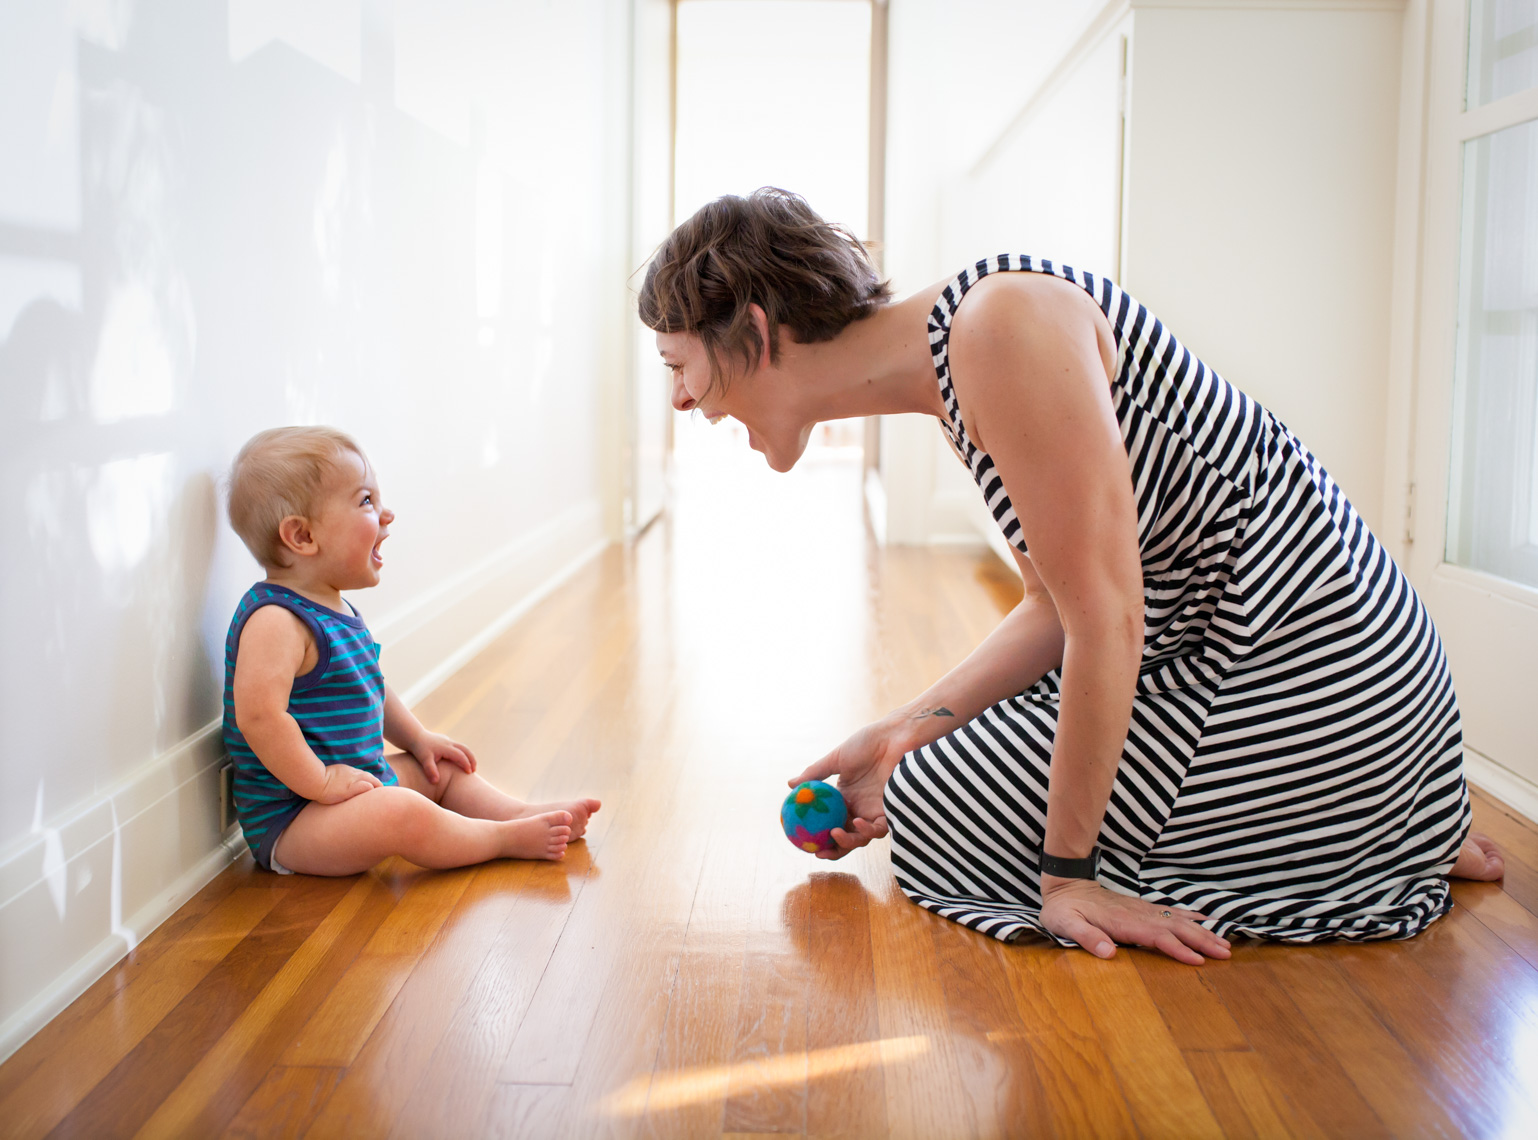 Lifestyle image of mom and baby playing on floor | Tosca Radigonda Photography